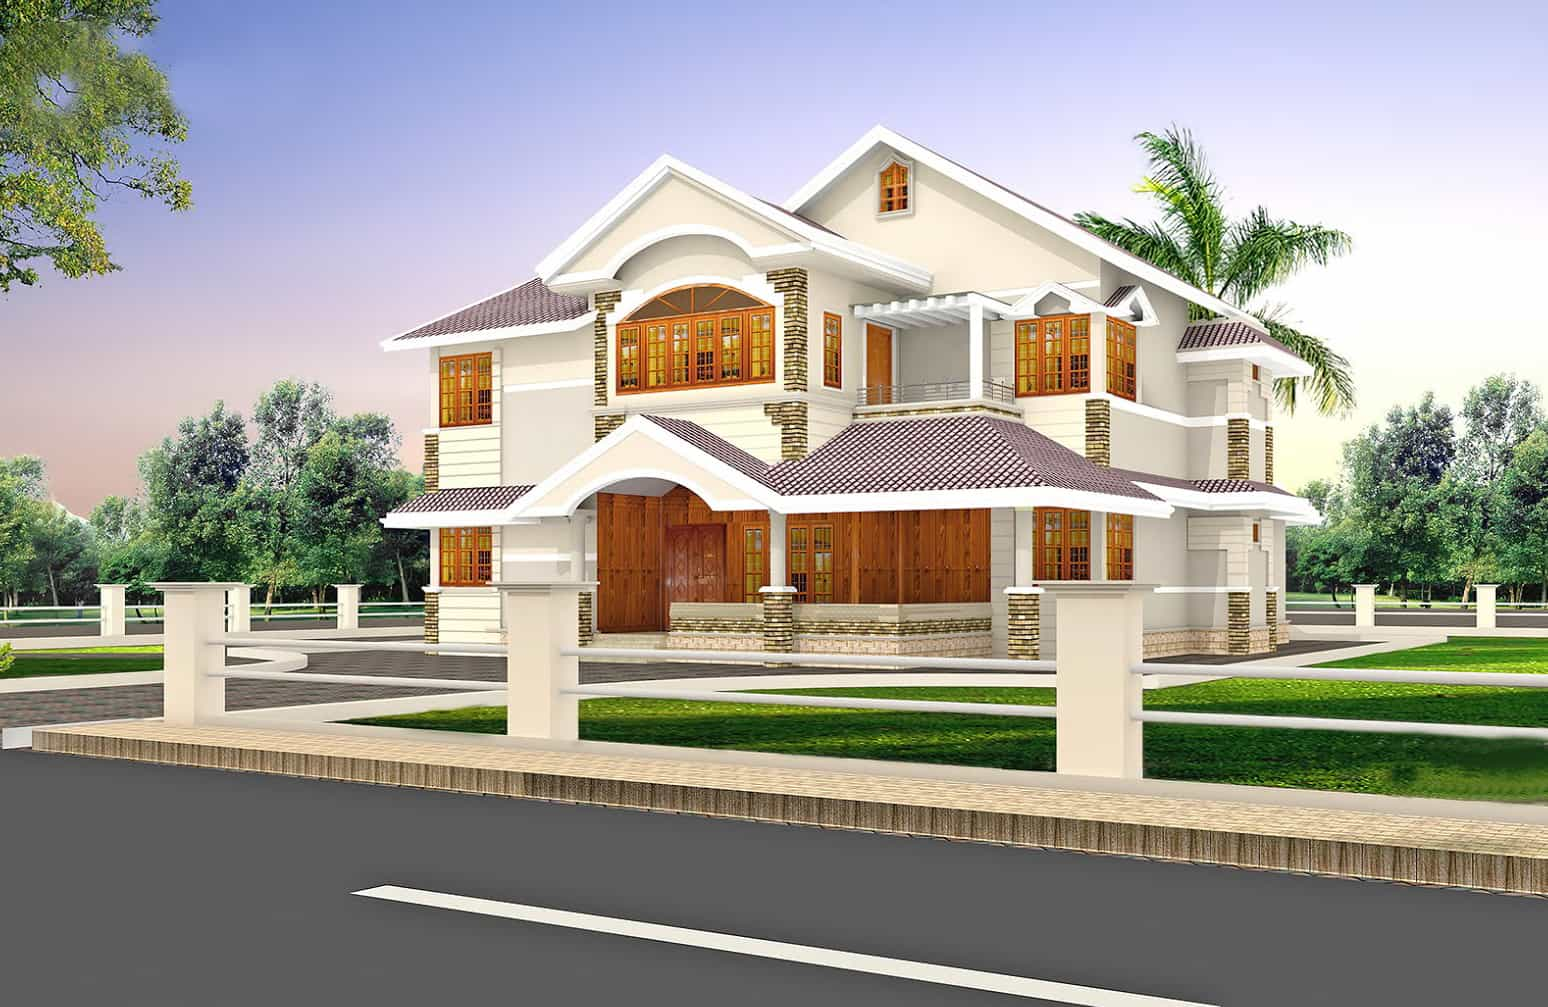 4bhk house plans keralahouseplanner Three d house plans